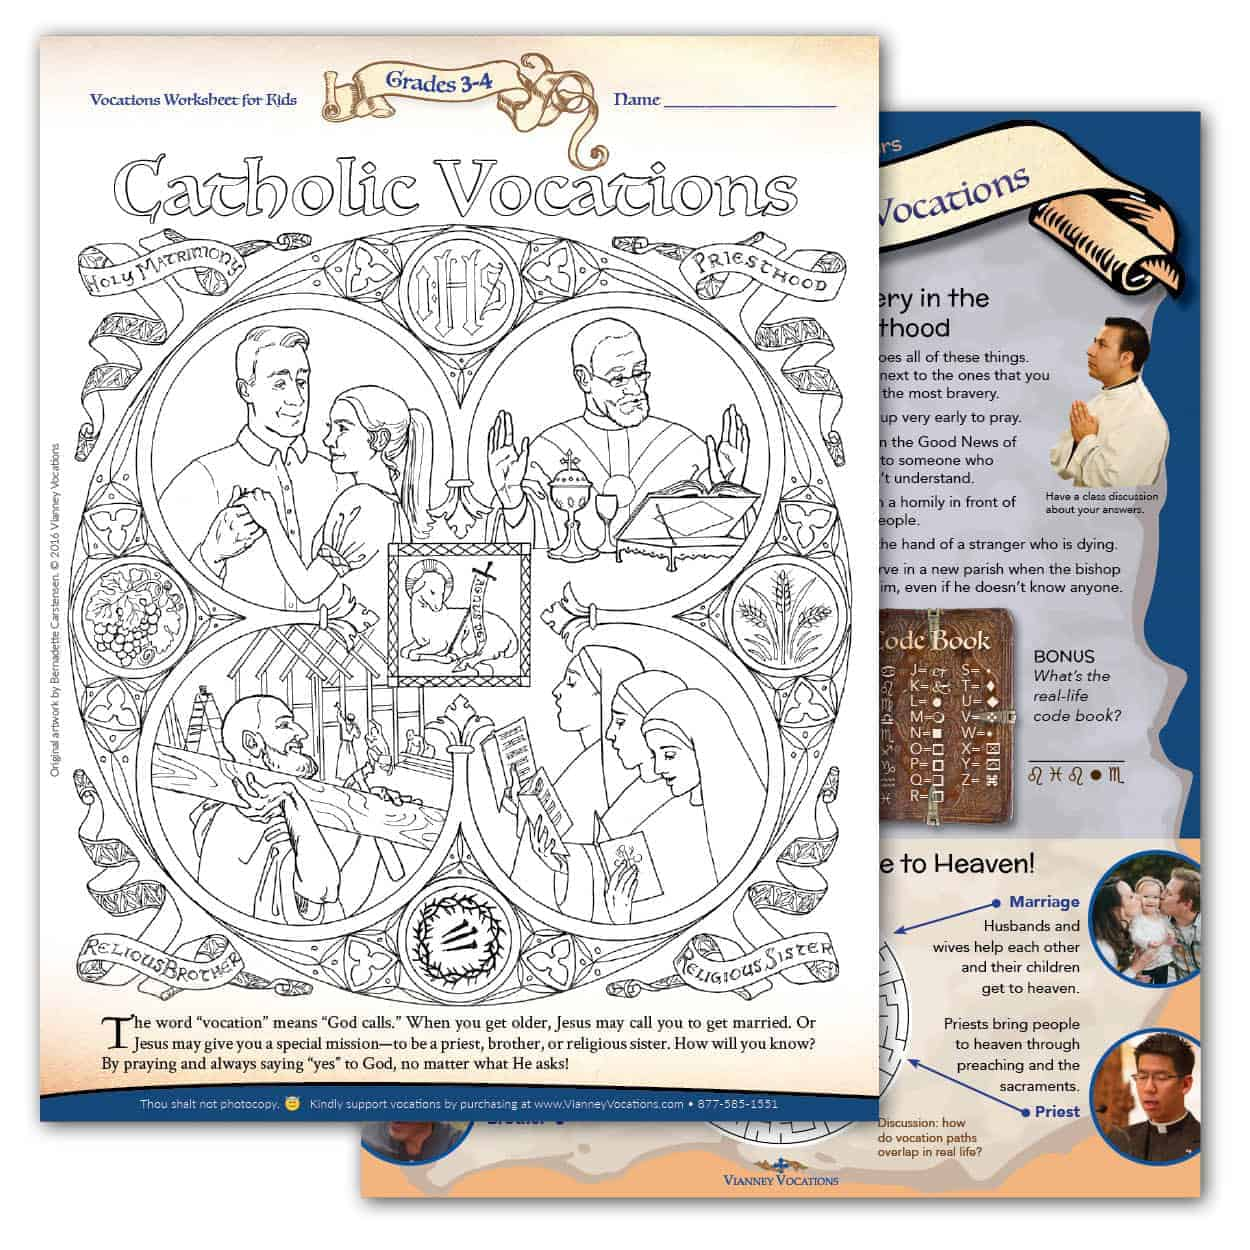 hight resolution of Vocations Worksheet for Kids - Grades 3-4 - Vianney Vocations